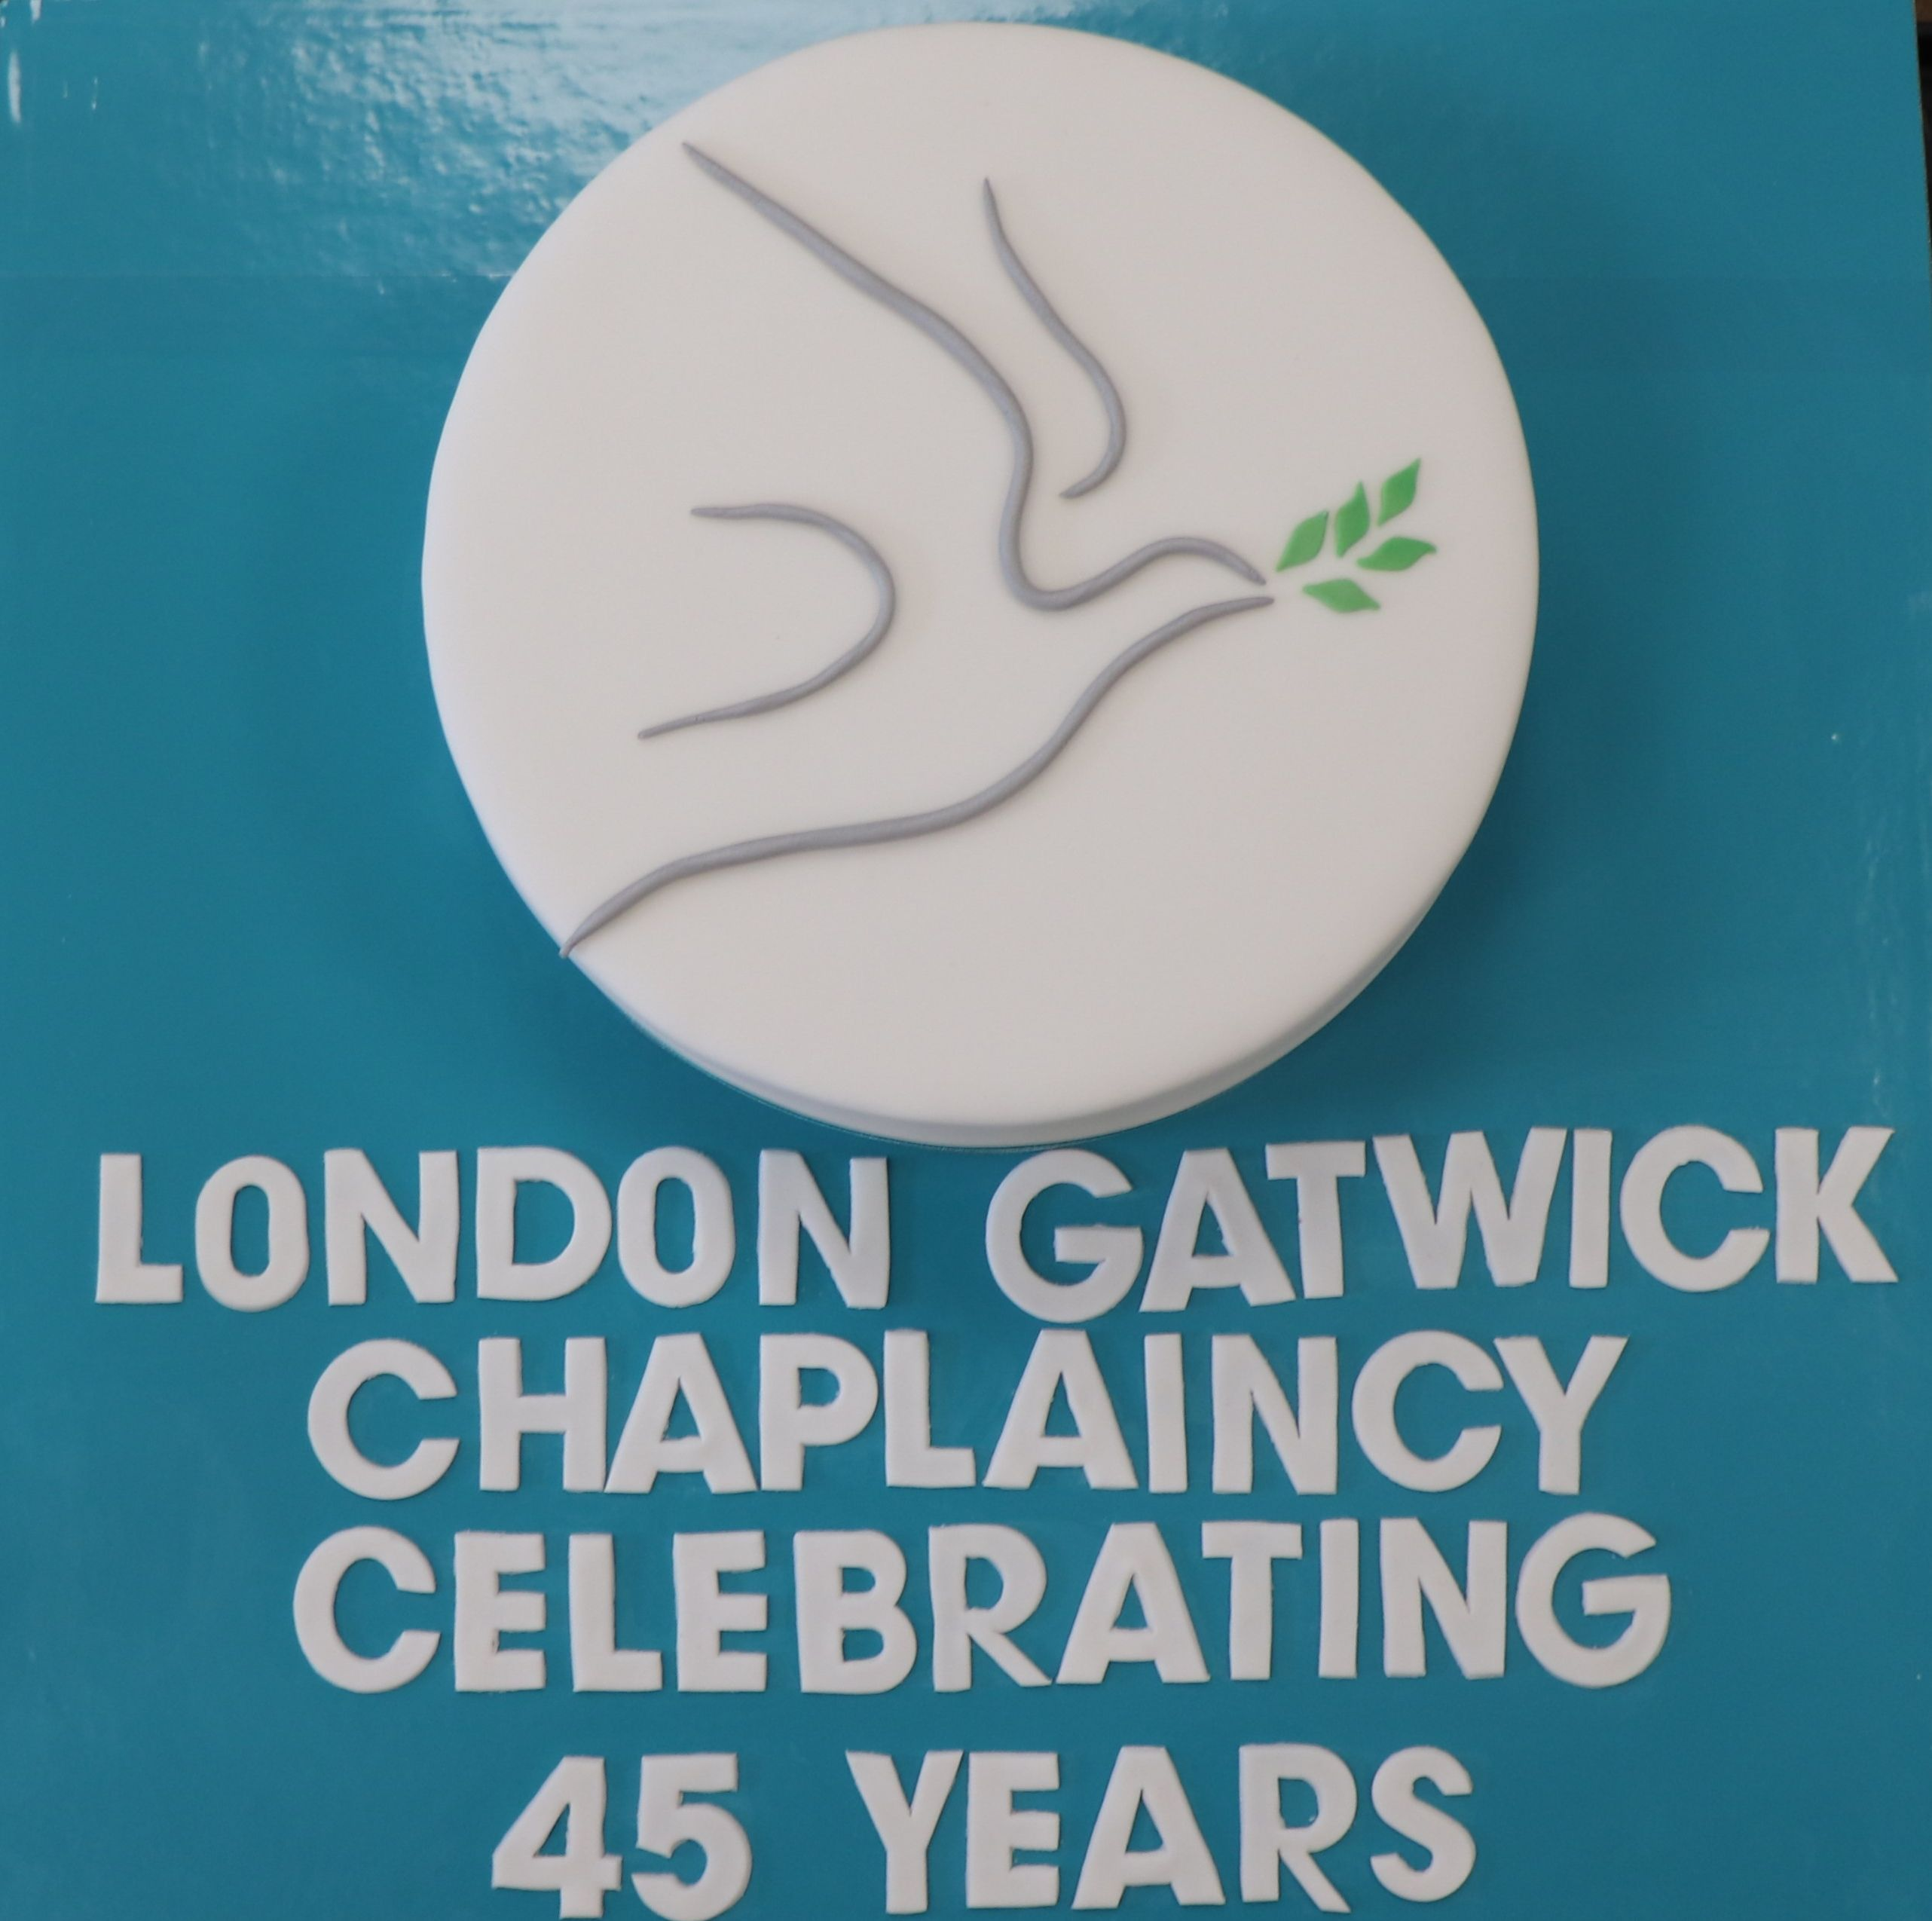 45th Anniversary cake with Chaplaincy logo